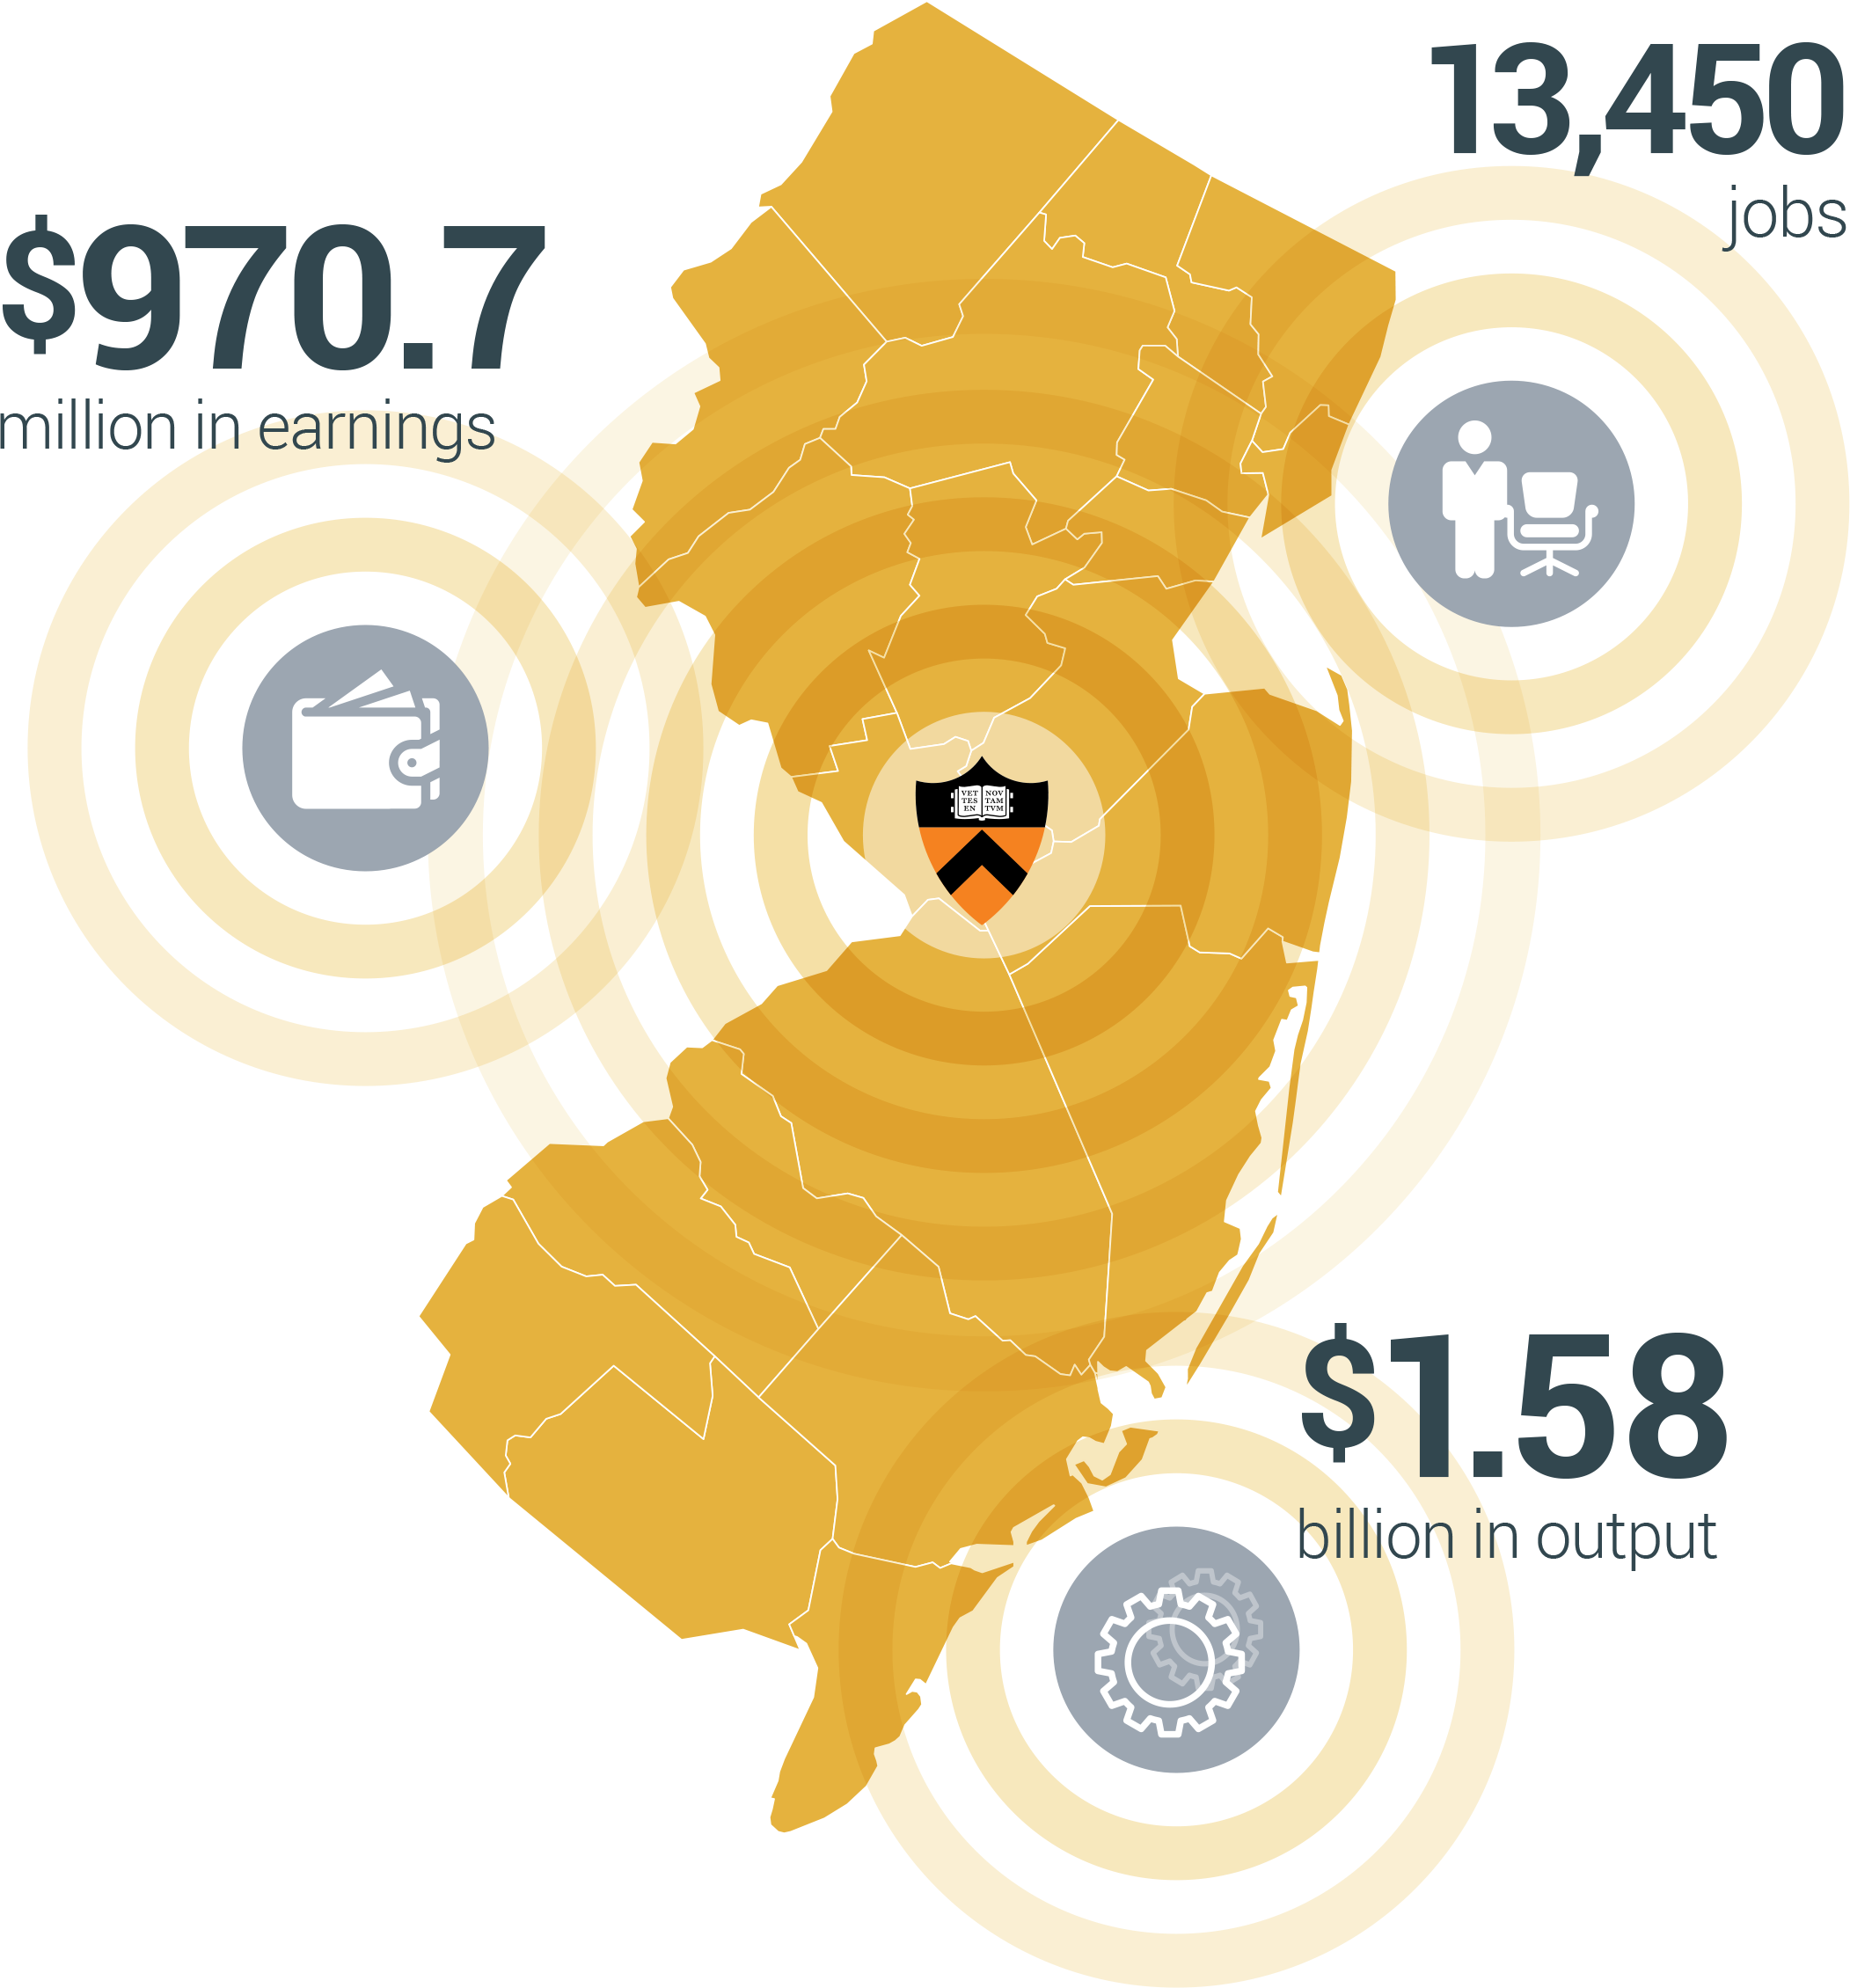 In fiscal year 2015, Princeton University directly and indirectly accounted for $1.58 billion in economic output in NJ, supporting 13.450 jobs with earnings totaling $970.7 million.